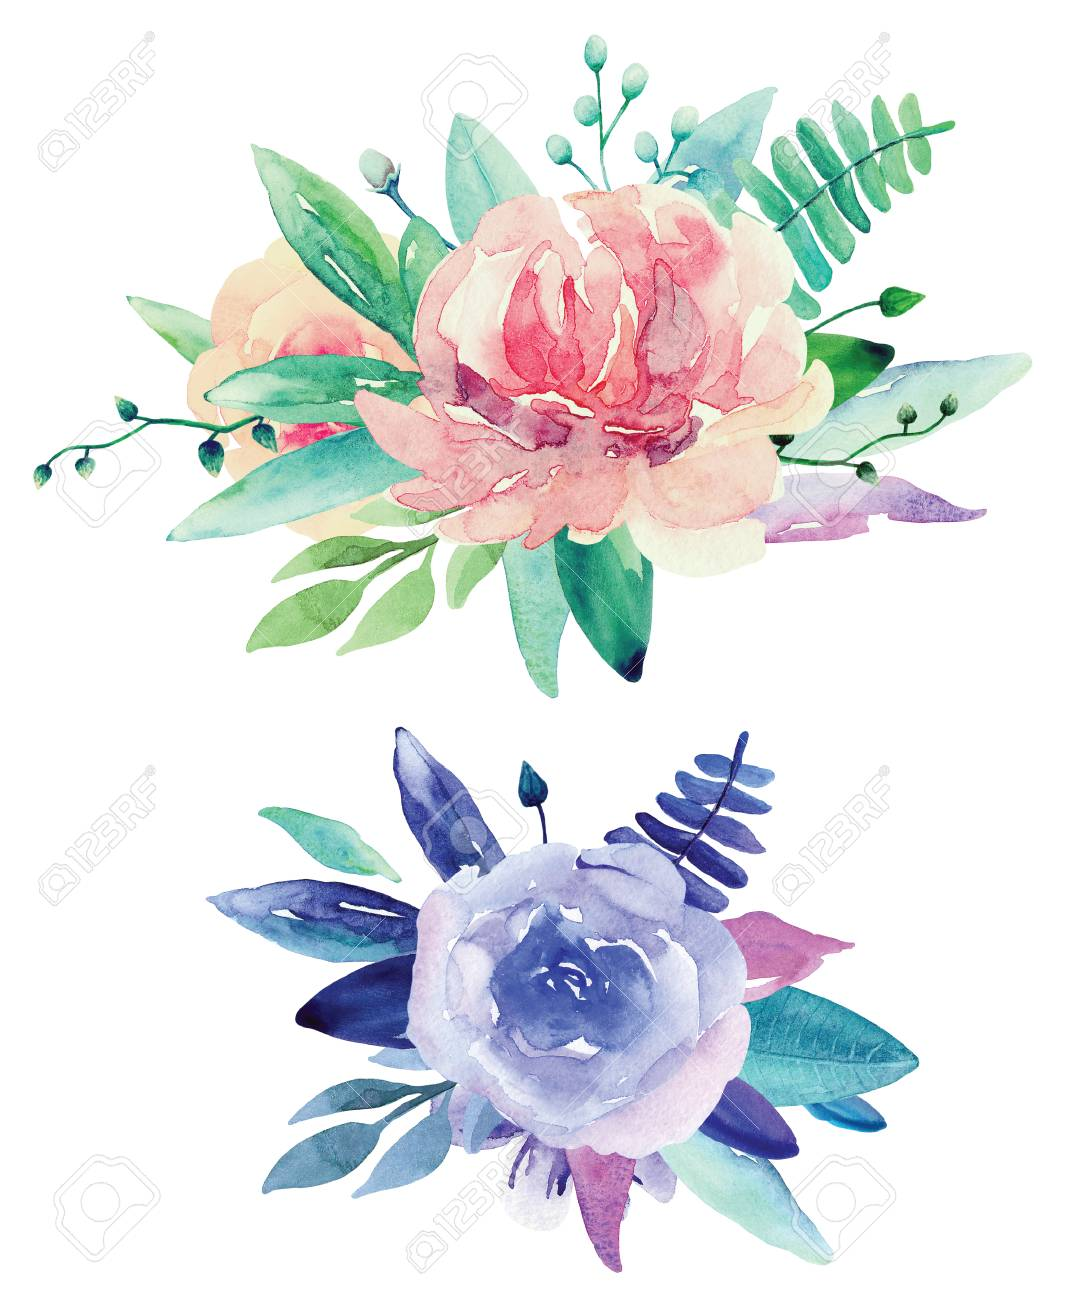 Watercolor Flower Clipart & Free Watercolor Flower Clipart.